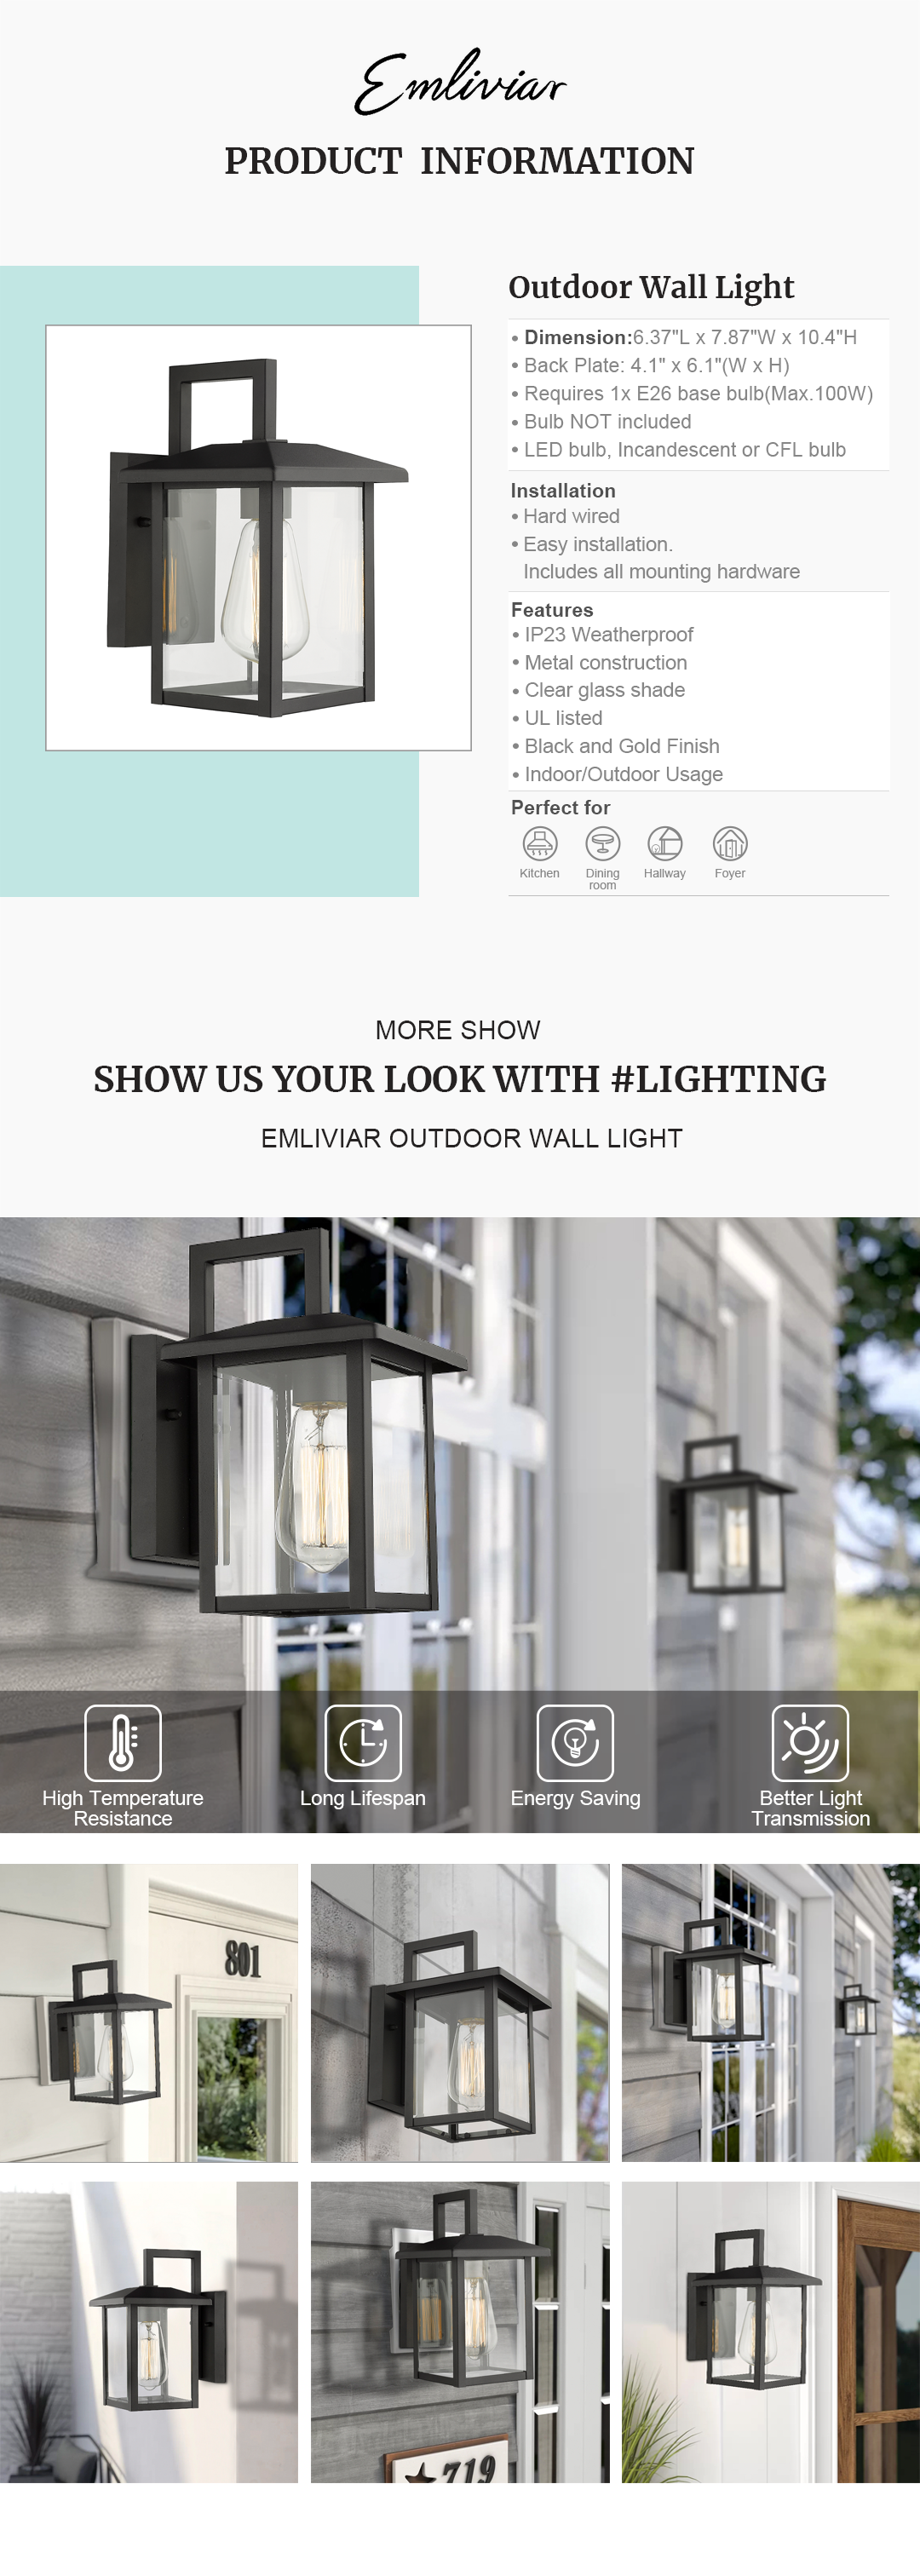 """Weather resistant and suitable for wet locations, this outdoor light fixture features sturdy metal construction and clear glass shade Easy installation with open bottom to allow for easy bulb replacement. Includes all mounting hardware Hard wired. Requires 1x E26 base bulb(Max.100W). Bulb NOT included. Compatible with LED bulb, Incandescent or CFL bulb UL Listed with a one-year warranty. This outdoor wall light is perfect for your house, porch, garage, hallway and entryway. Dimension: 6.37"""" x 7.87"""" x 10.4""""(L x W x H); Back Plate: 4.1"""" x 6.1""""(W x H)"""